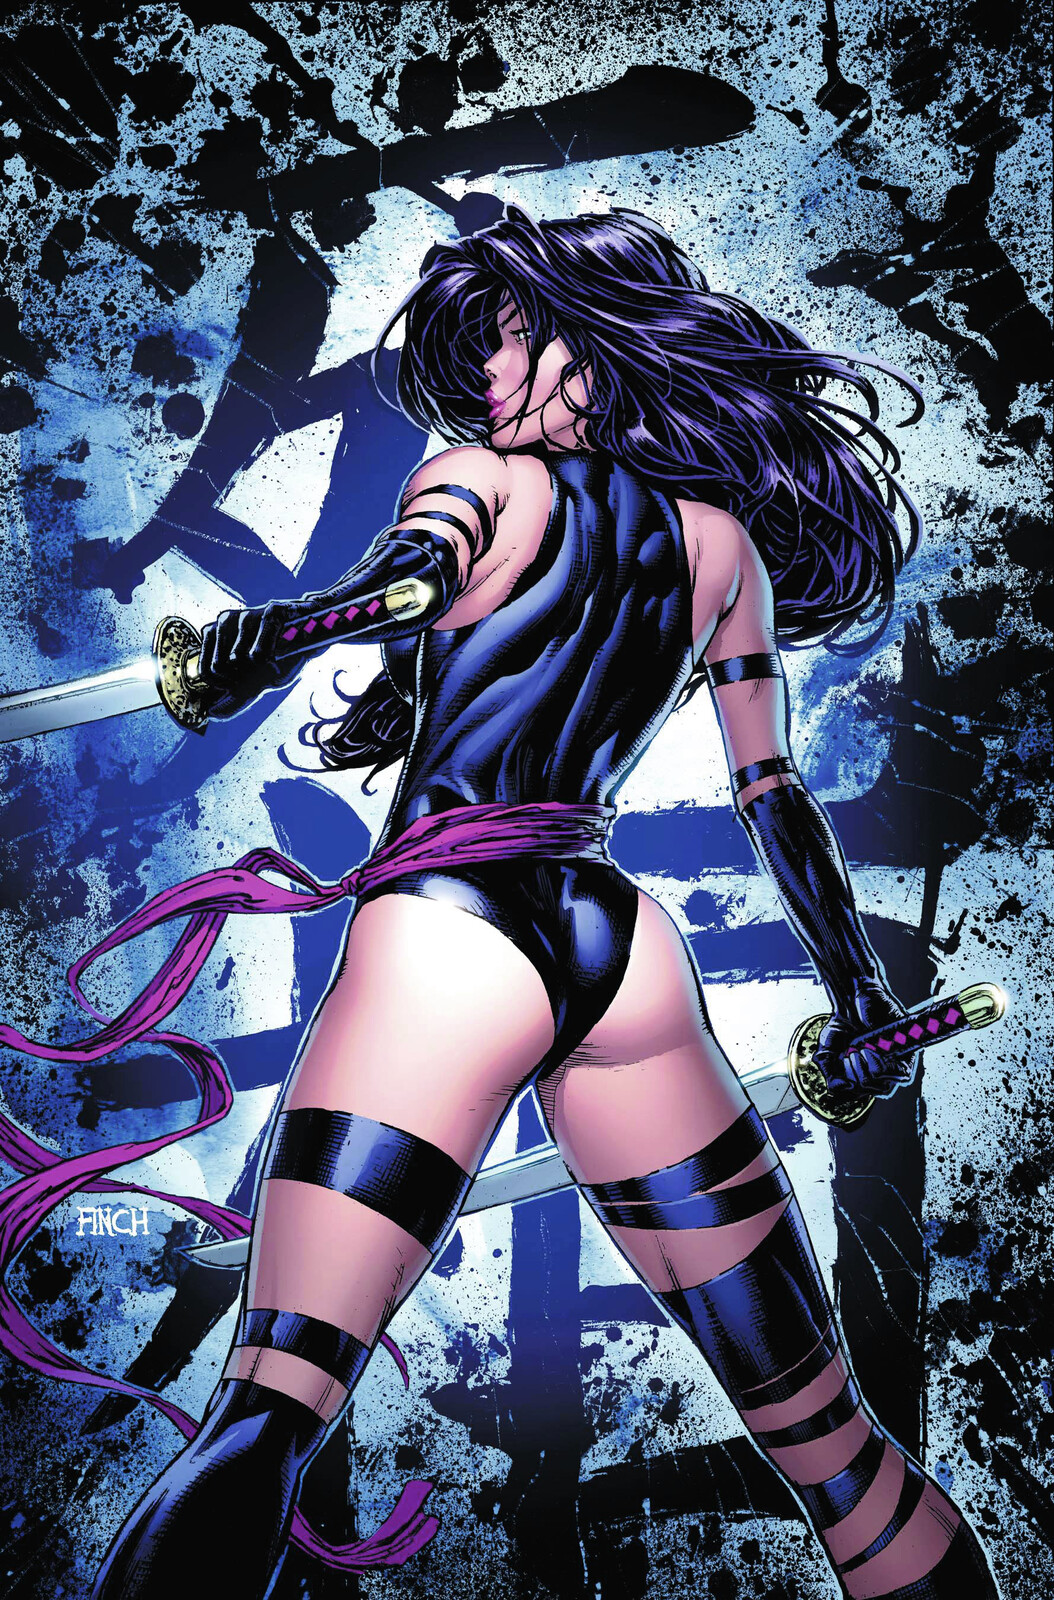 Homage after David Finch's Psylocke #1